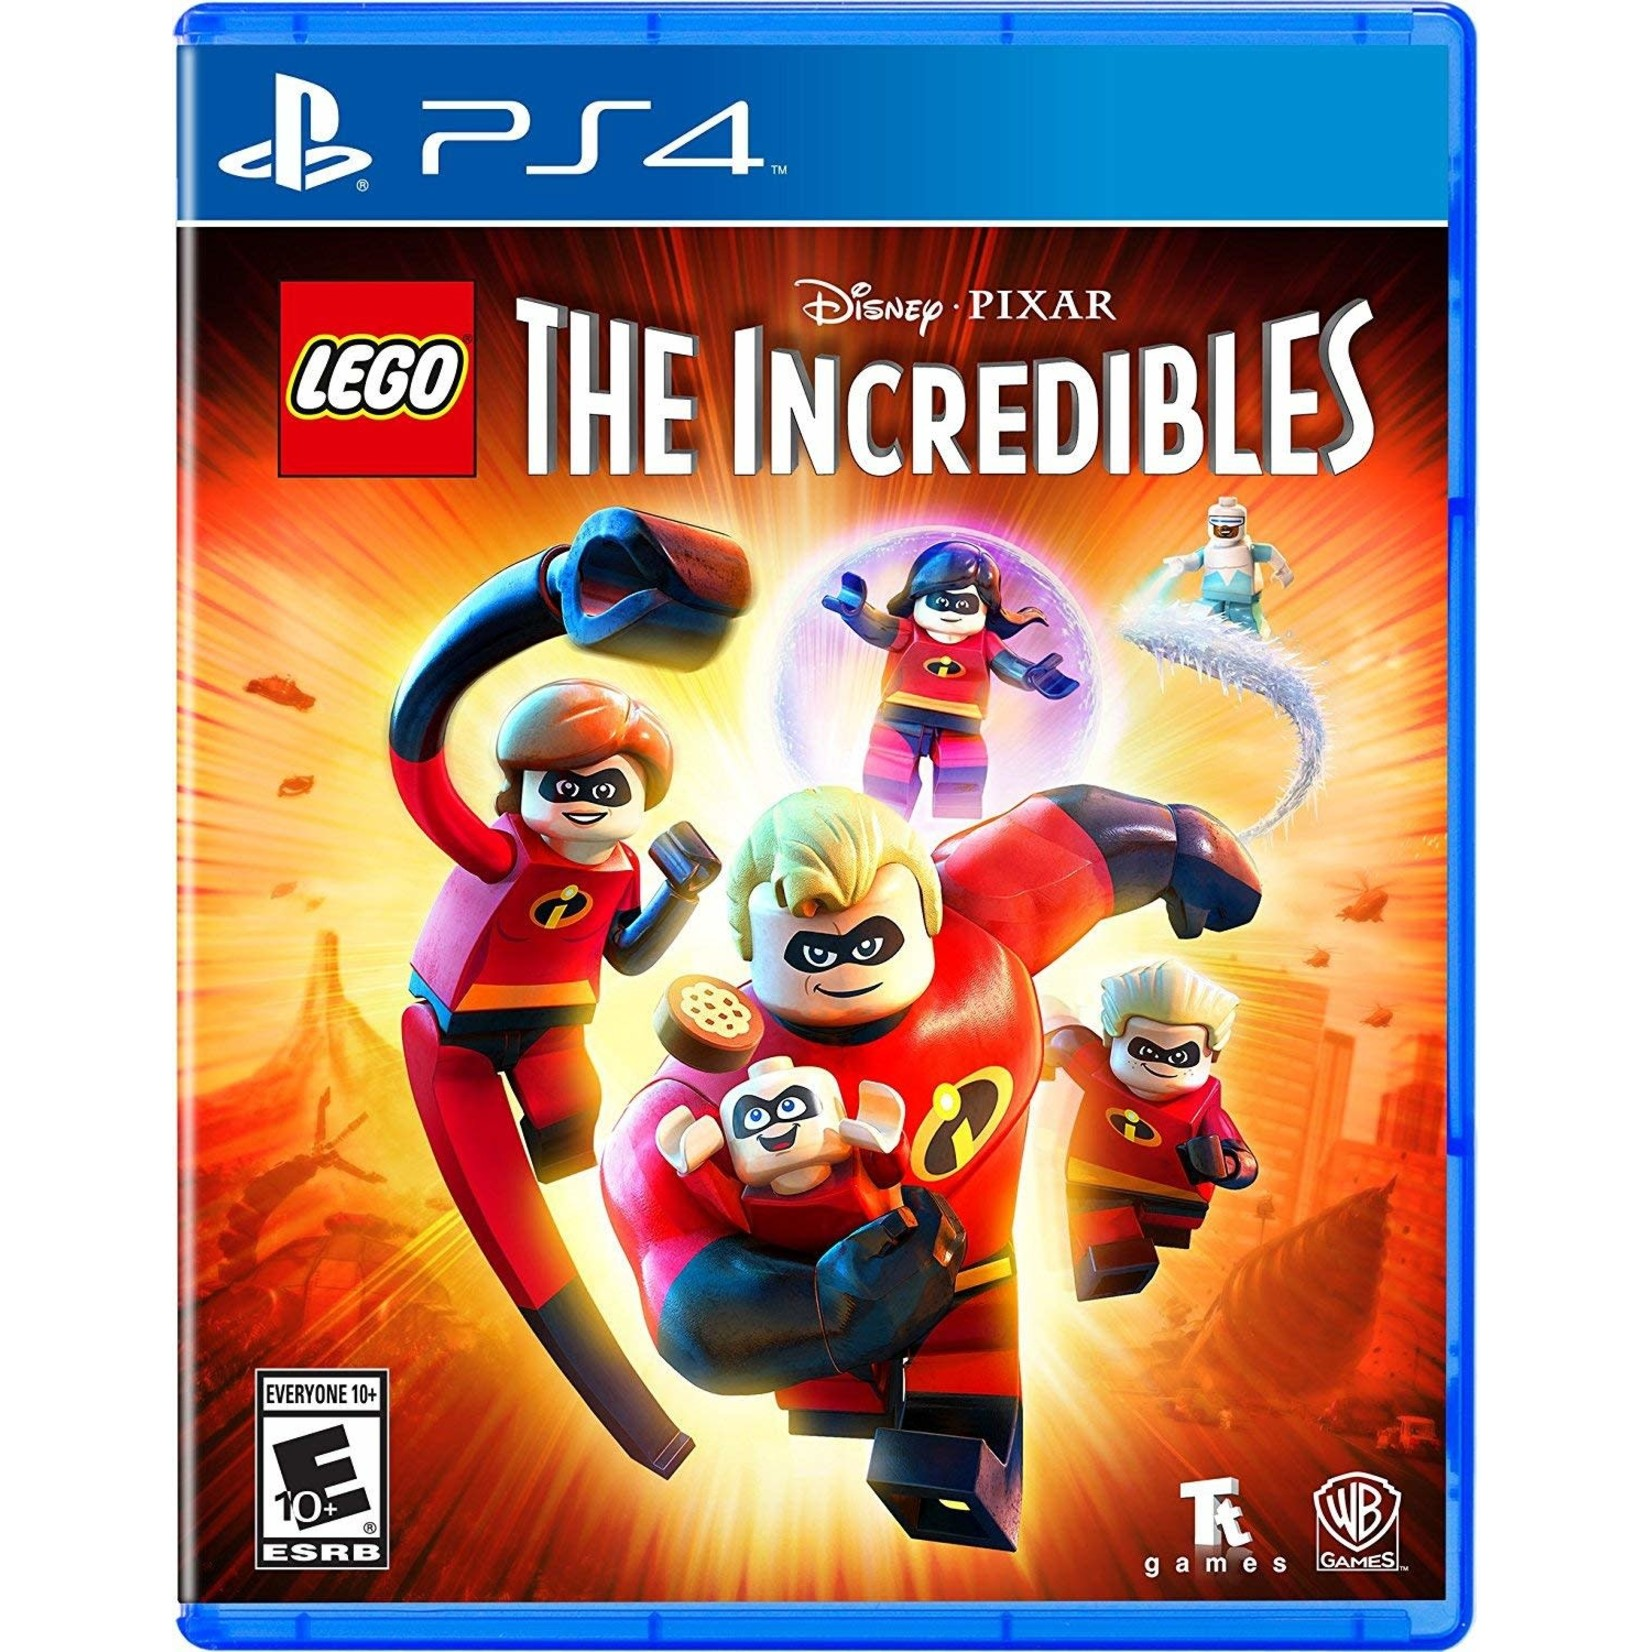 PS4-LEGO THE INCREDIBLES